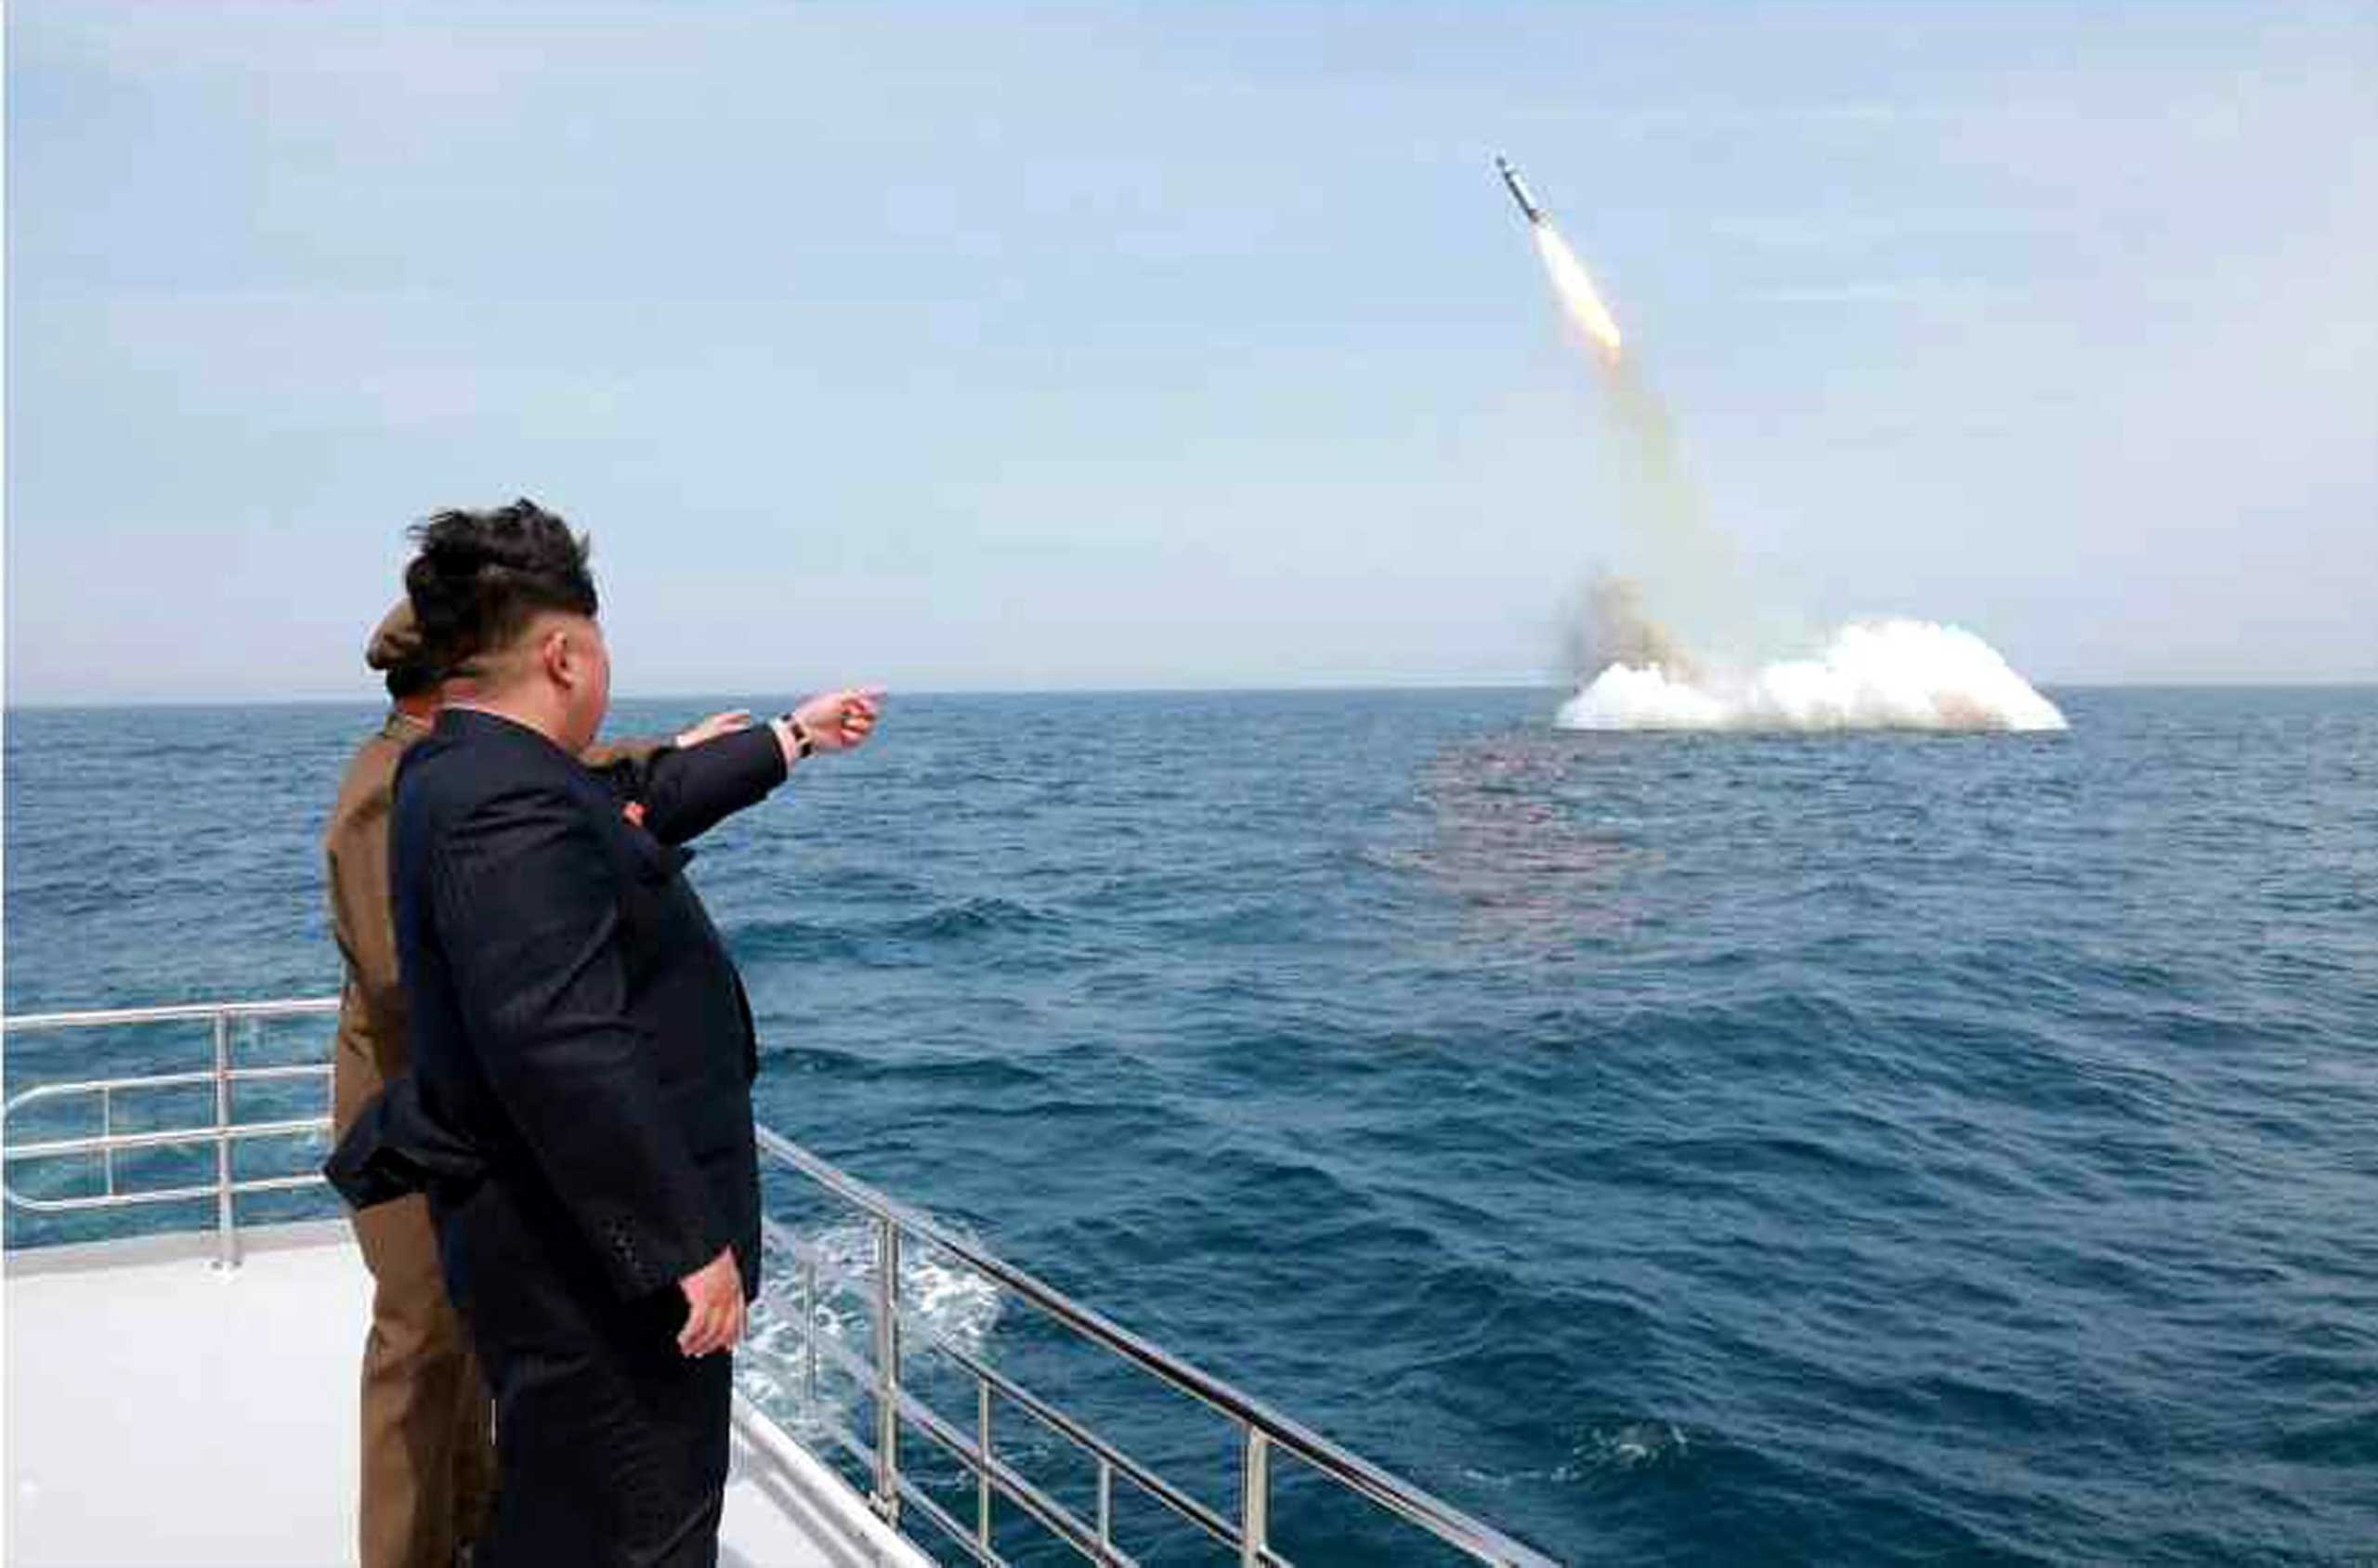 Photo showing North Korean leader Kim Jong-un at the scene of the alleged missile launch on May 9, 2015.